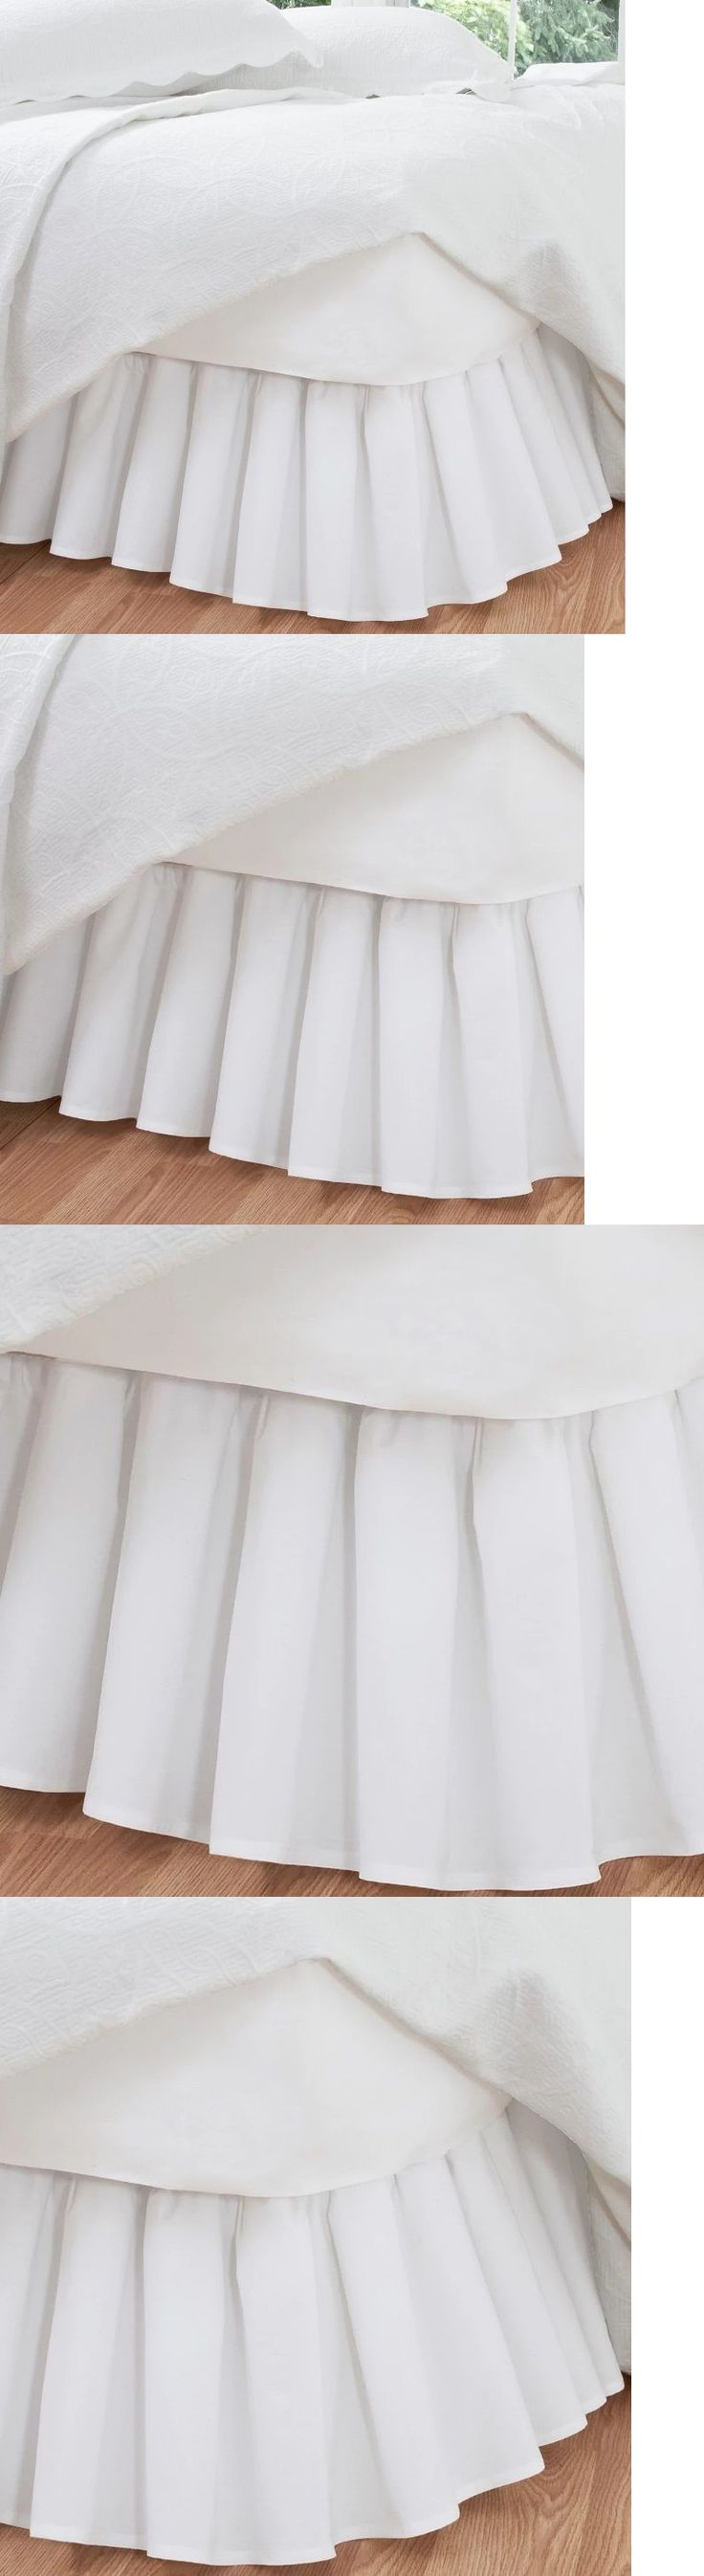 Bed Skirts 20450: Ruffled White Bed Skirt King Size 14 Inch Drop Length Poplin Cotton Blend Fabric -> BUY IT NOW ONLY: $42.65 on eBay!